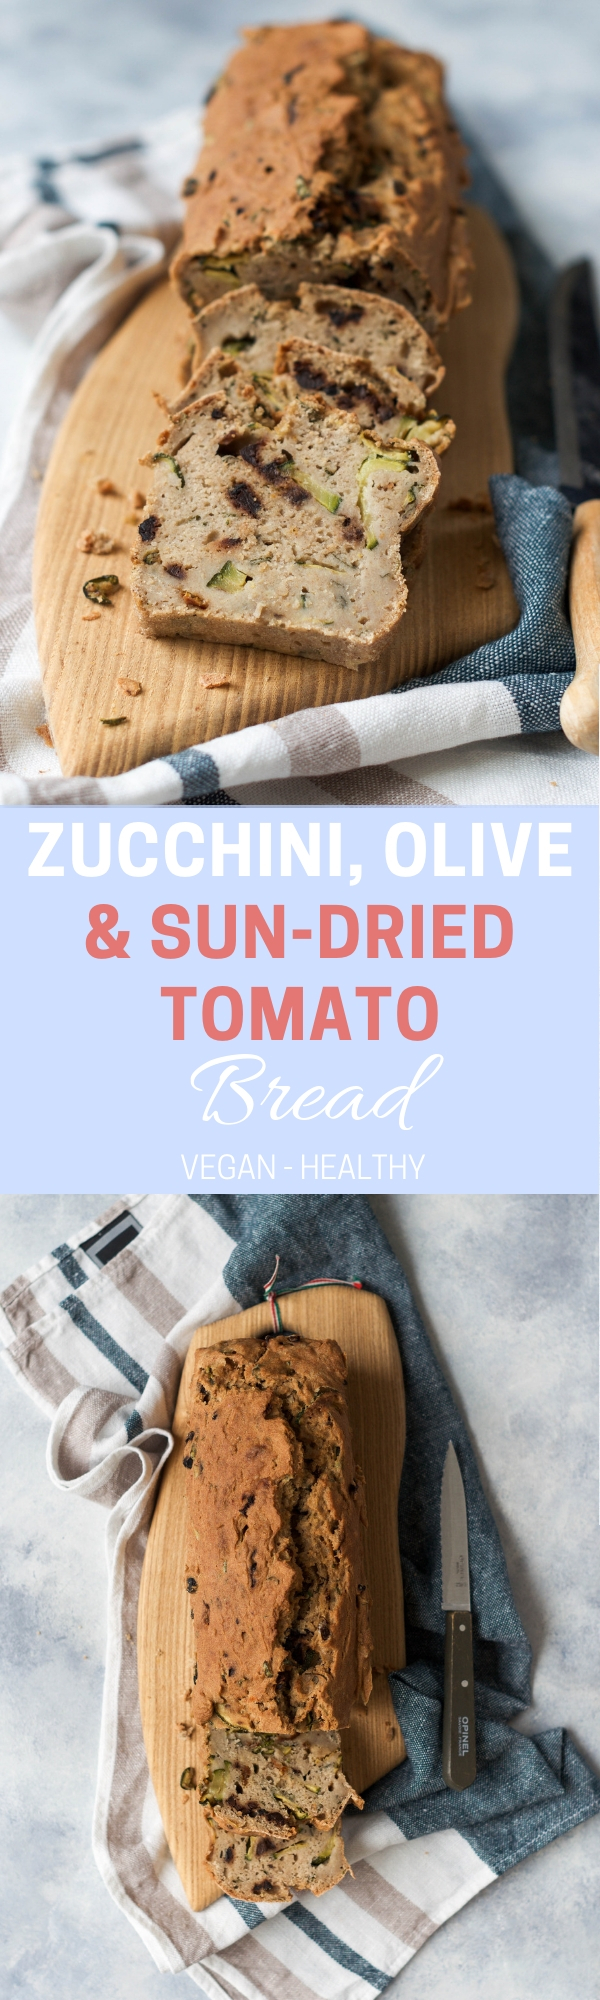 Zucchini, Olive and Sun-dried Tomato Bread - Wanders and Greens